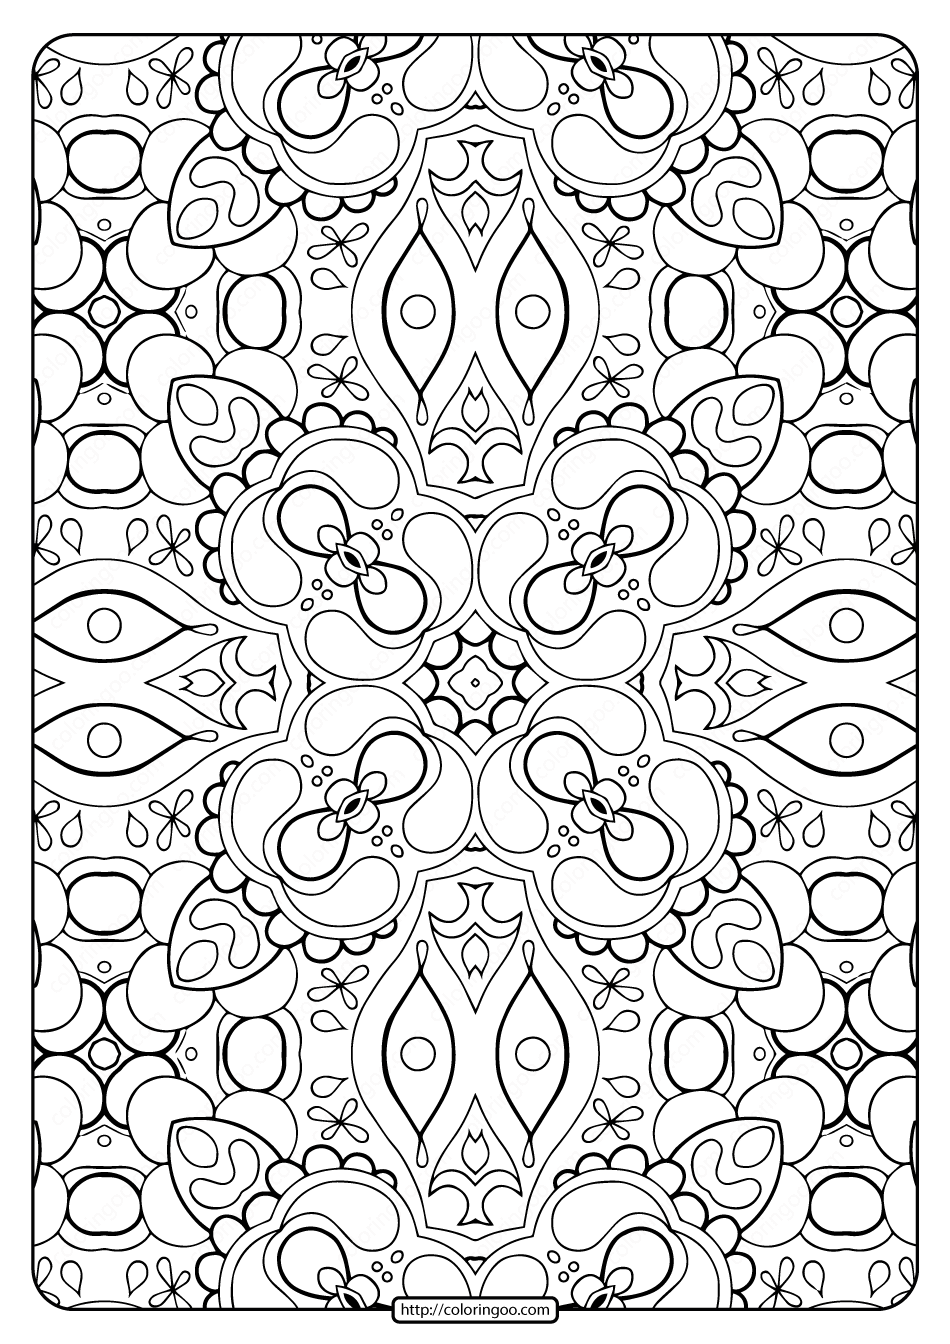 coloring book for adults printable printable abstract coloring pages for adults at adults for printable book coloring